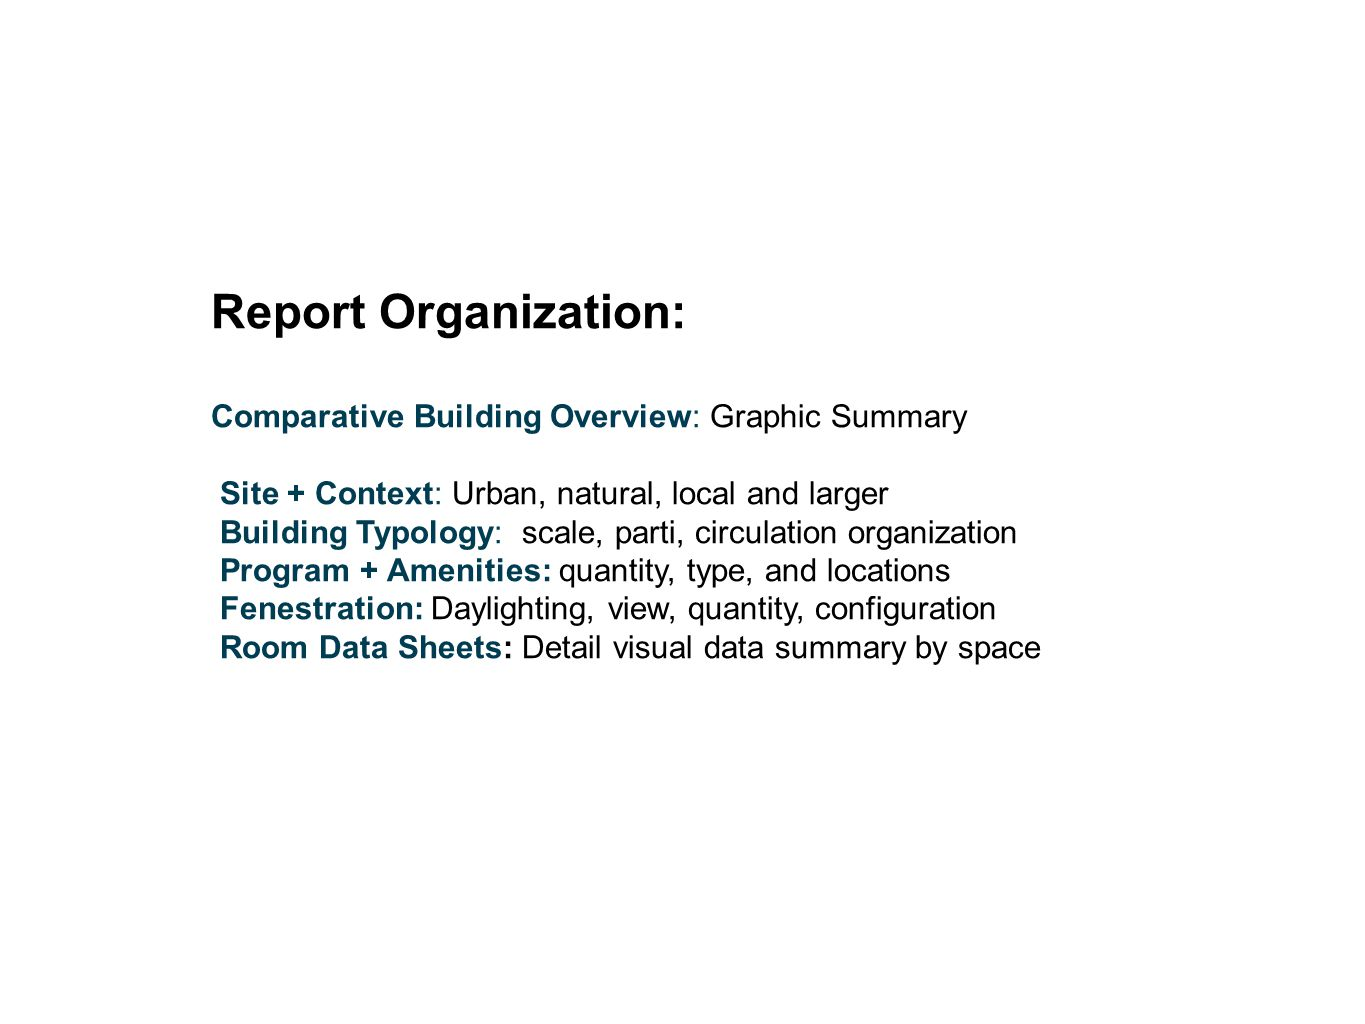 Report Organization: Comparative Building Overview: Graphic Summary Site + Context: Urban, natural, local and larger Building Typology: scale, parti, circulation organization Program + Amenities: quantity, type, and locations Fenestration: Daylighting, view, quantity, configuration Room Data Sheets: Detail visual data summary by space